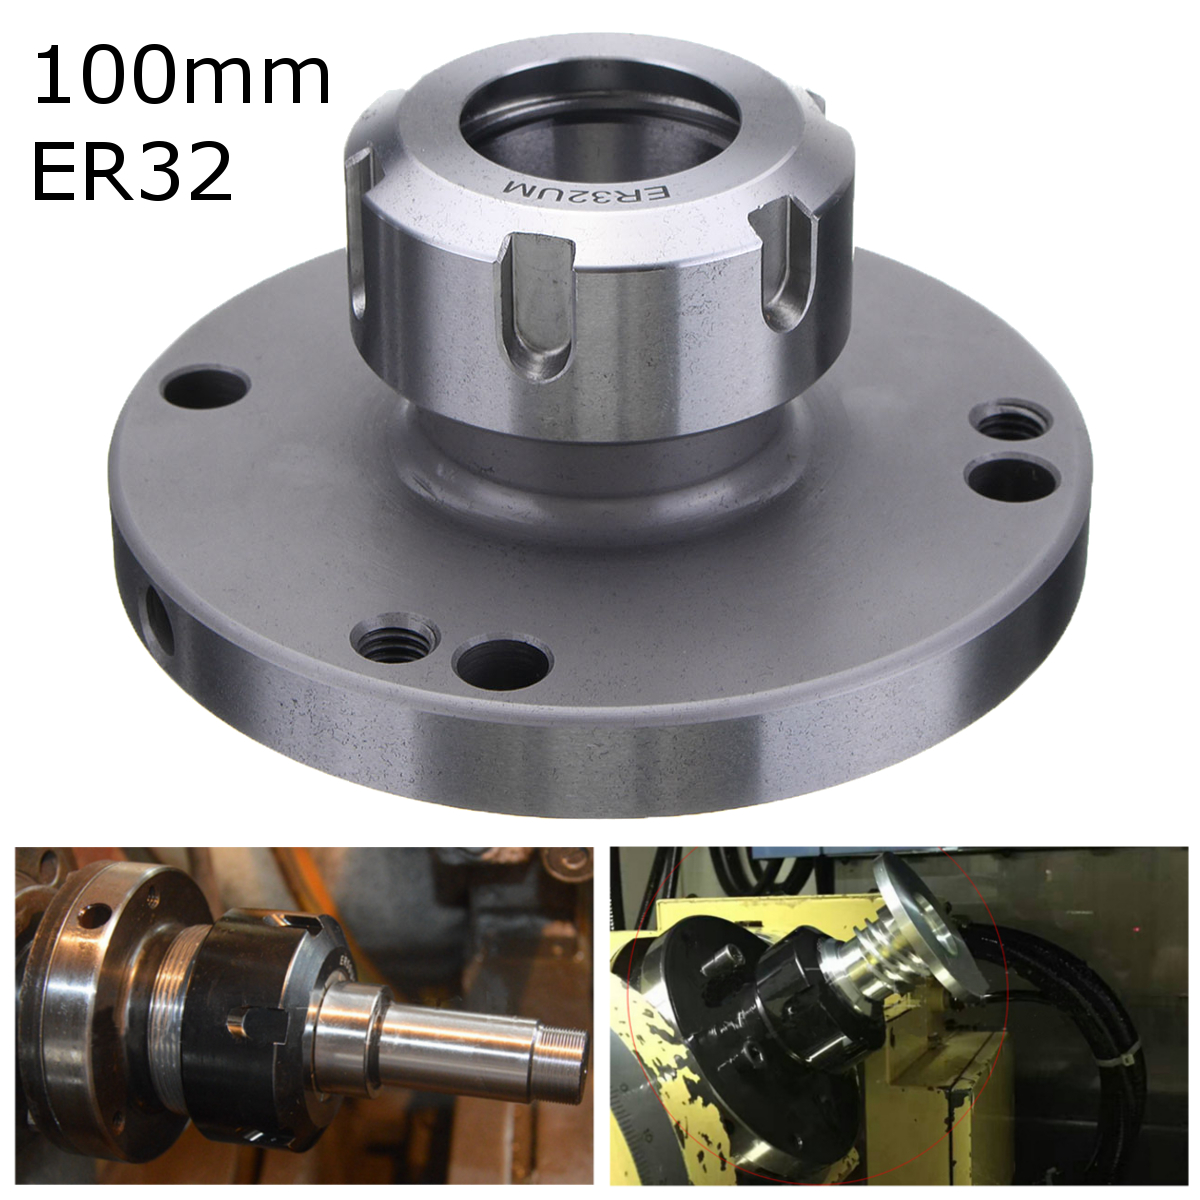 ER-32 Collet Chuck 100MM DIAMETER Compact Lathe Tight Tolerance For Milling